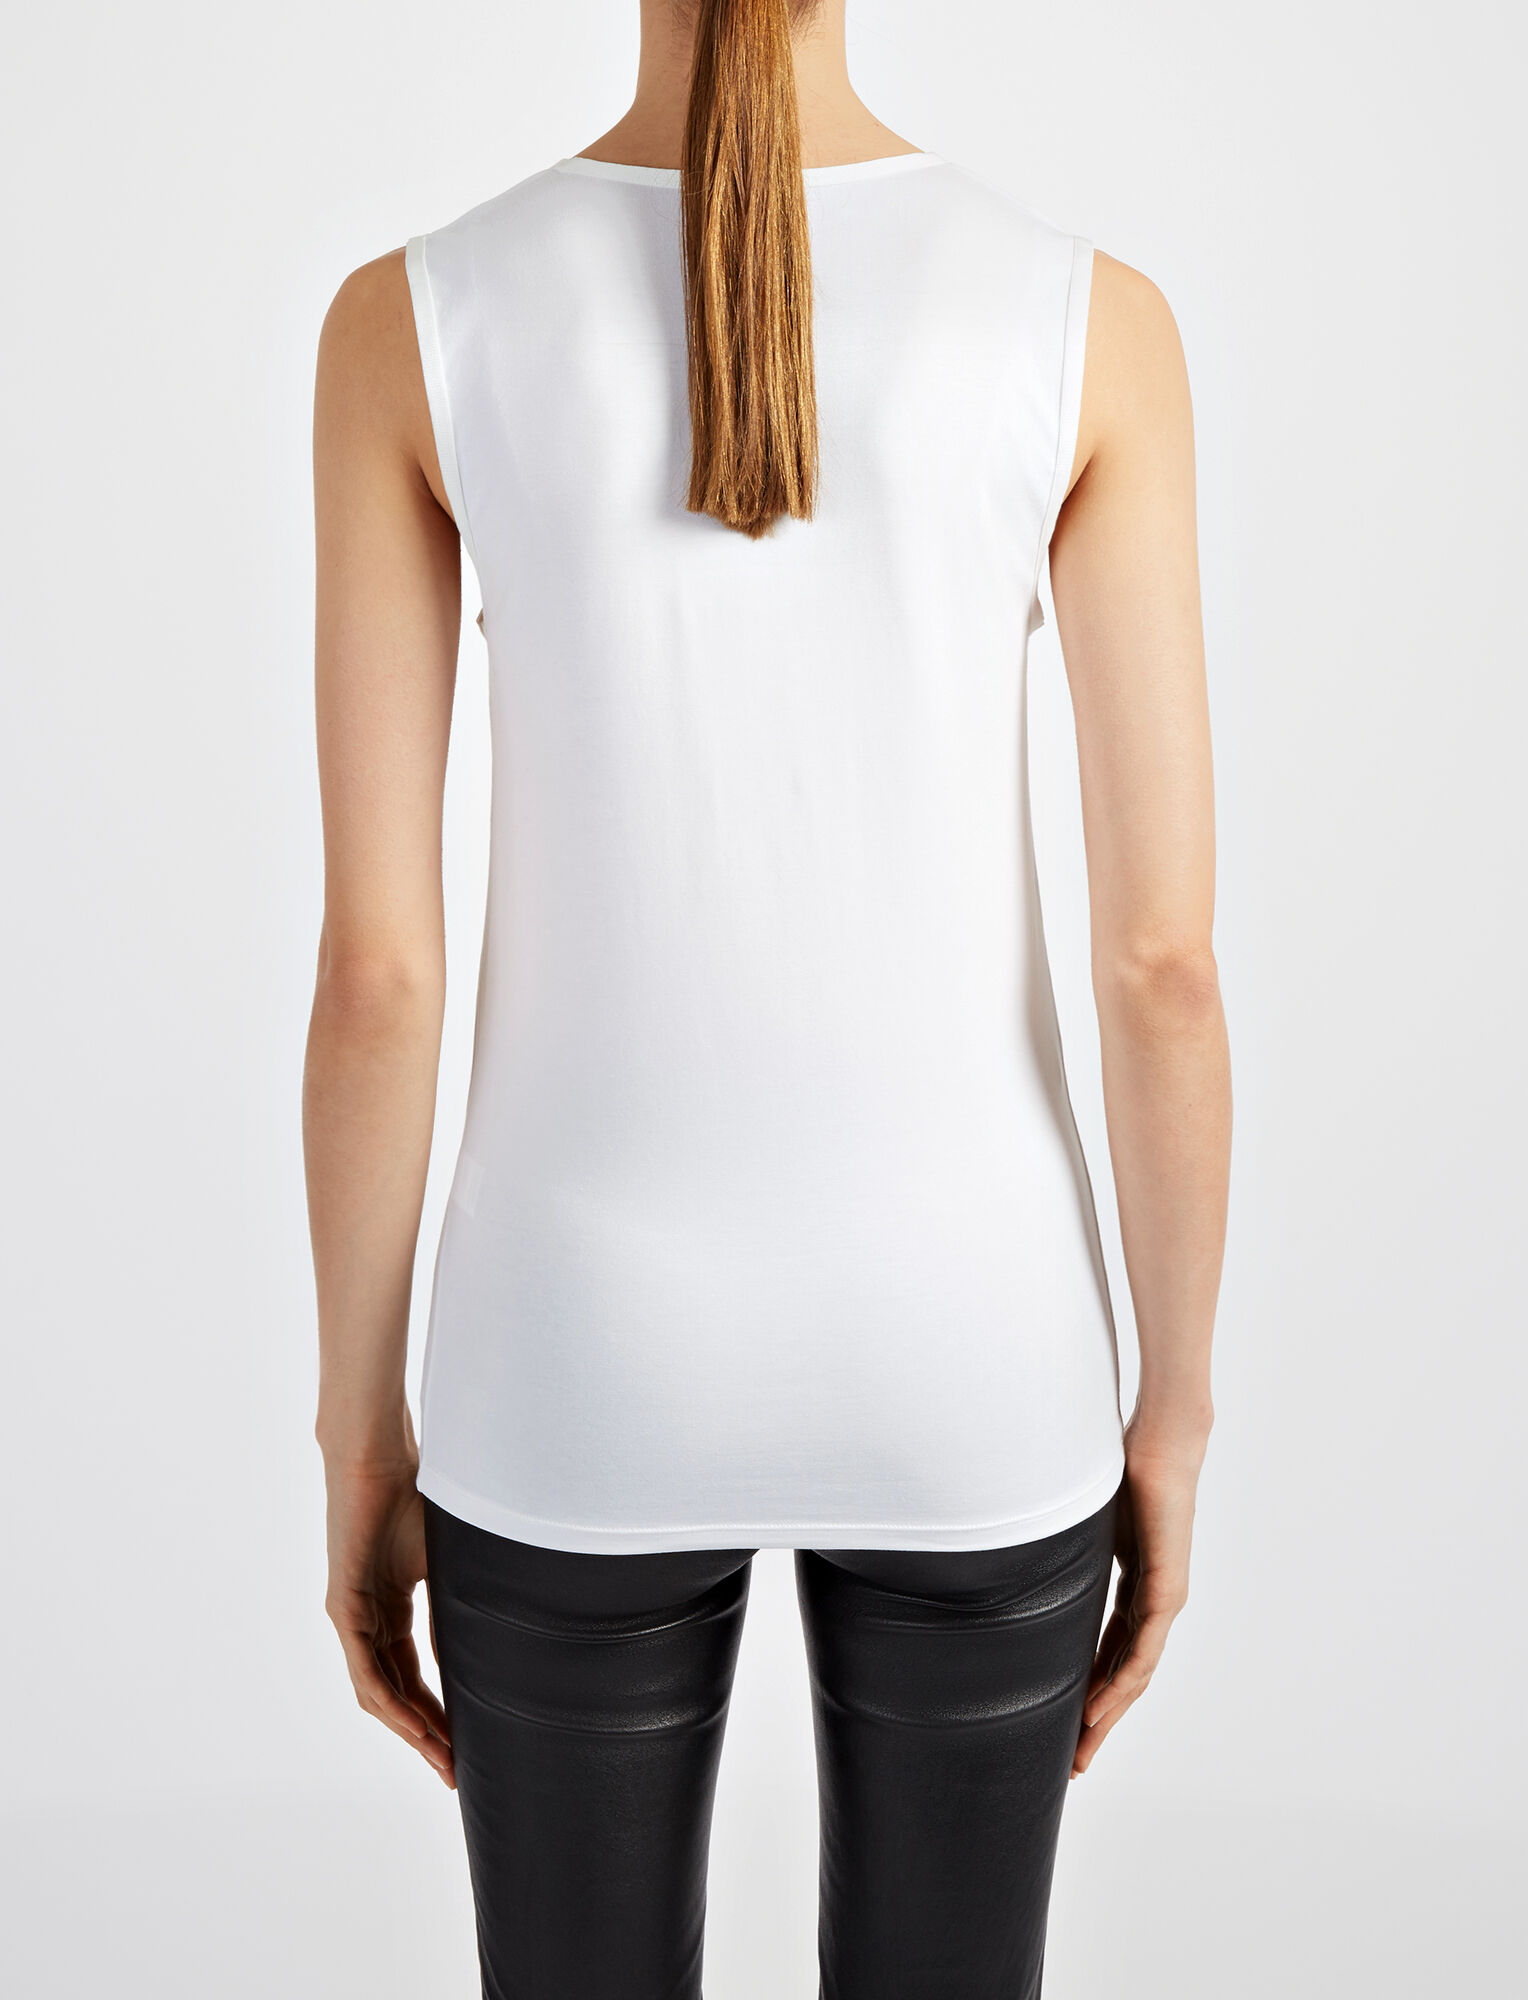 Joseph, Cotton Lyocell Stretch Tank, in OFF WHITE